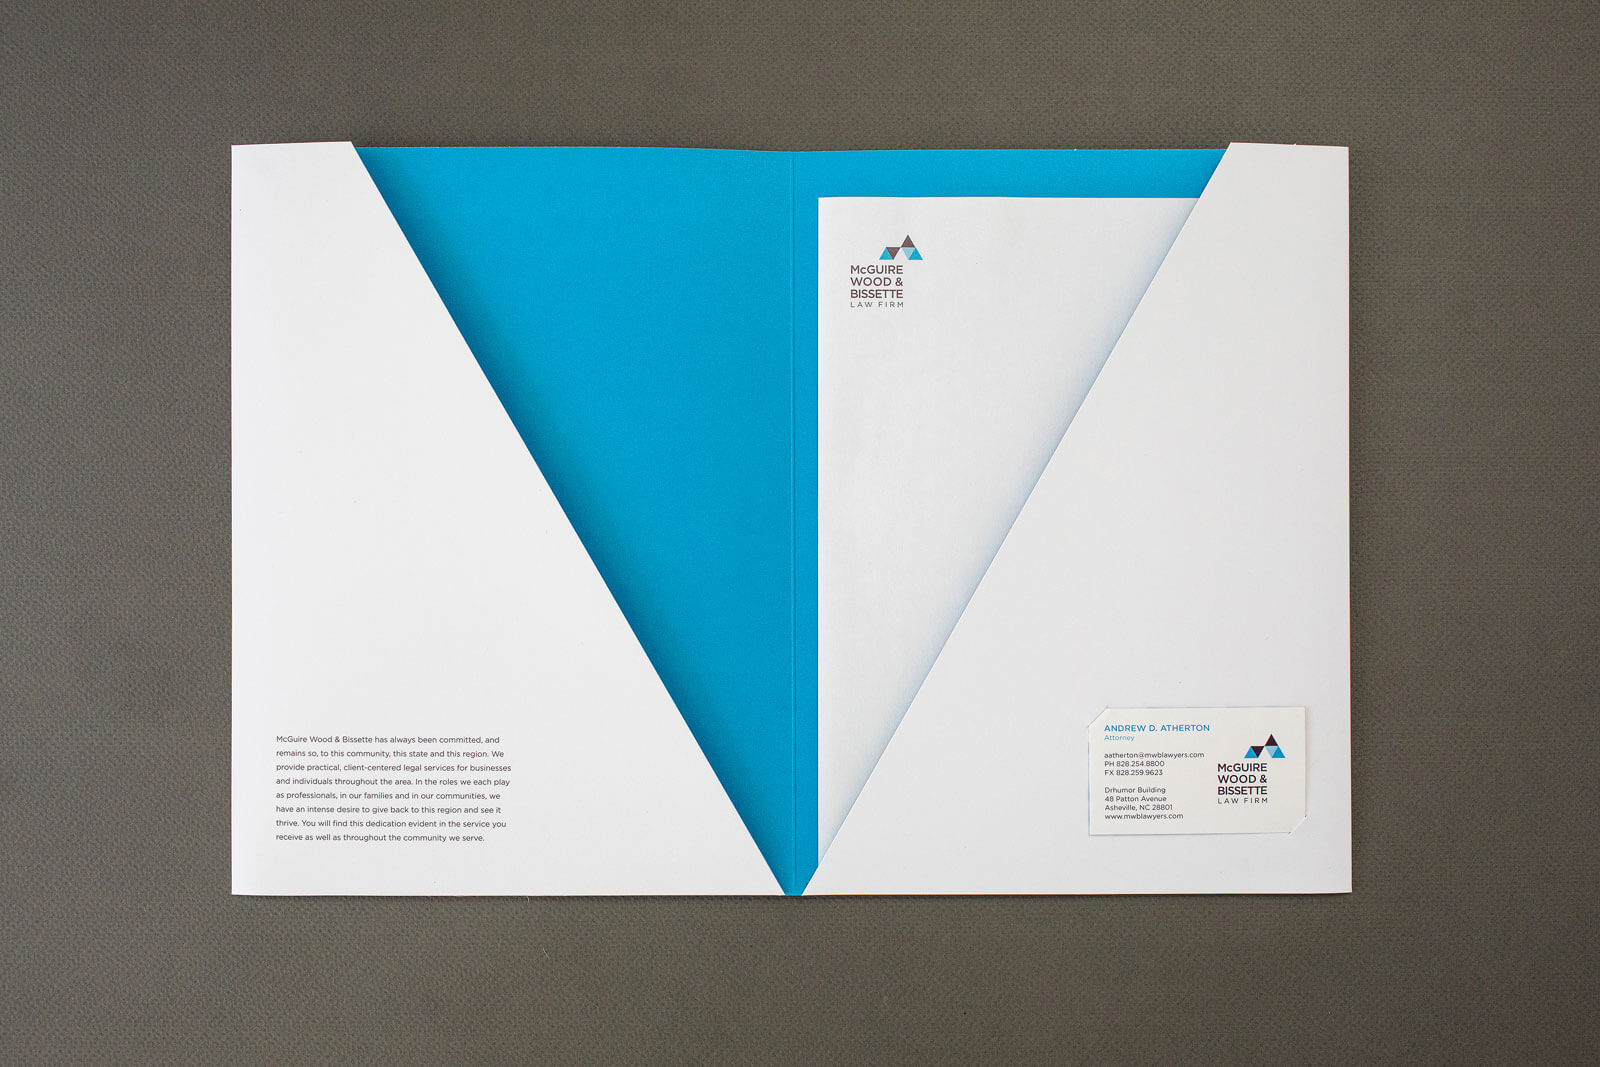 McGuire Wood & Bissette Law Firm folder, opened with blue interior and letterhead inserted, on a gray background.